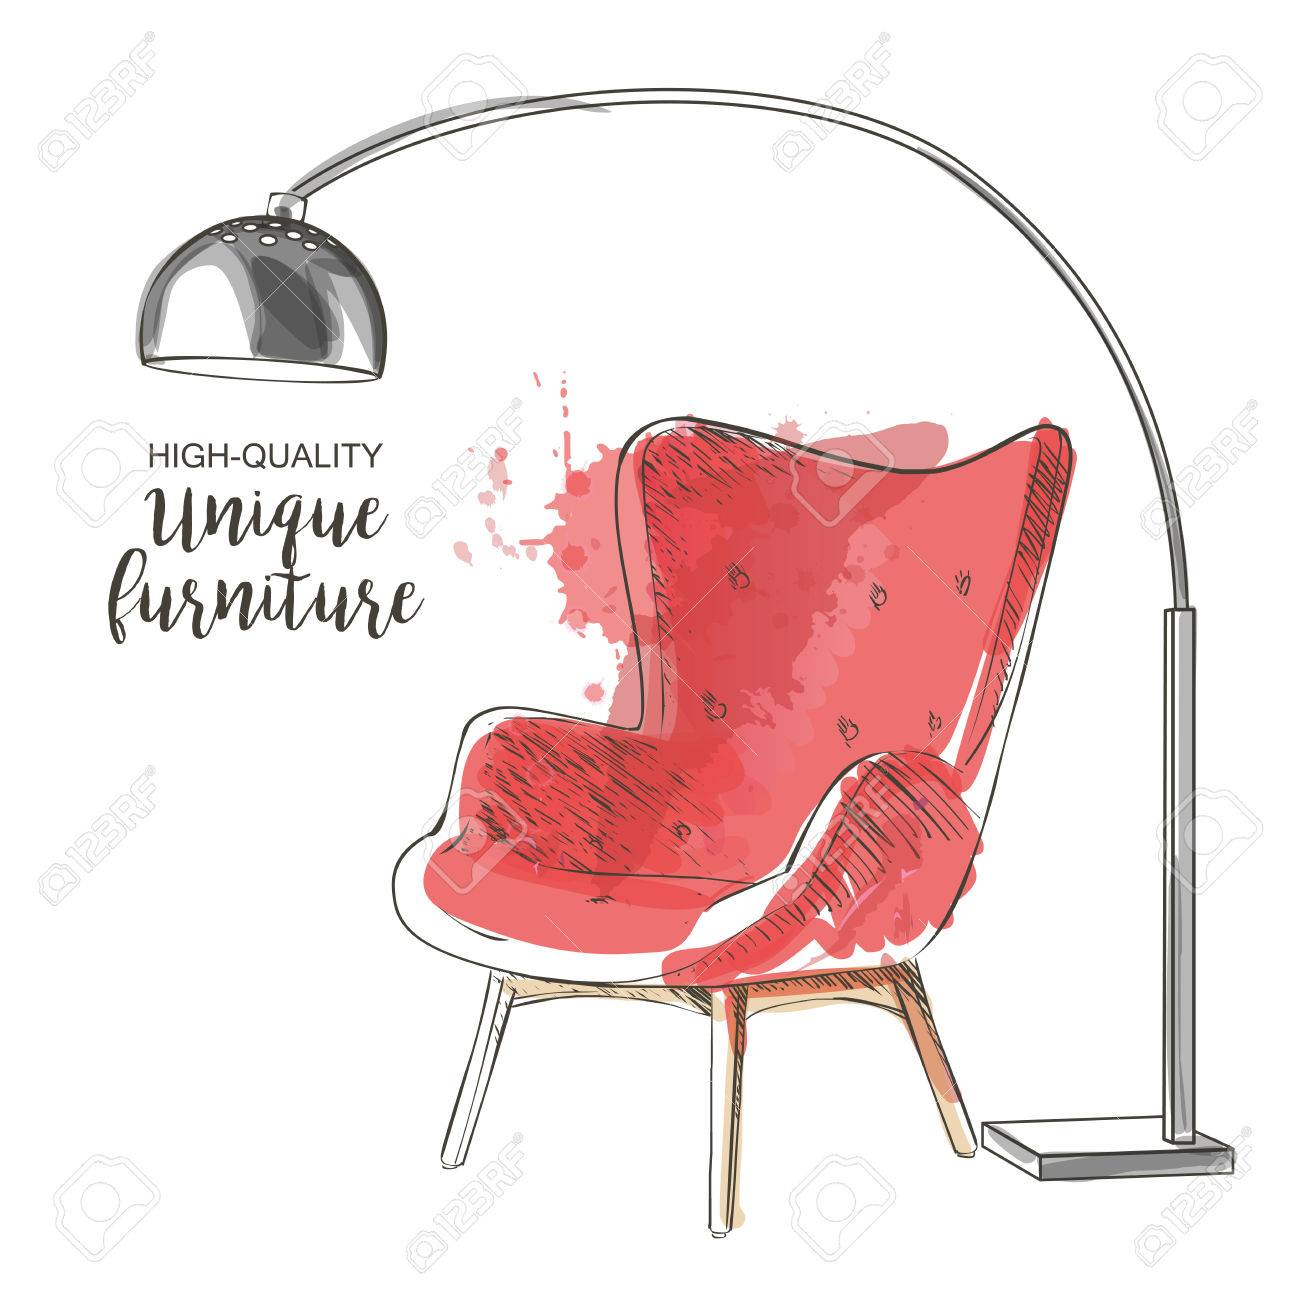 red chair sketch - 75207433